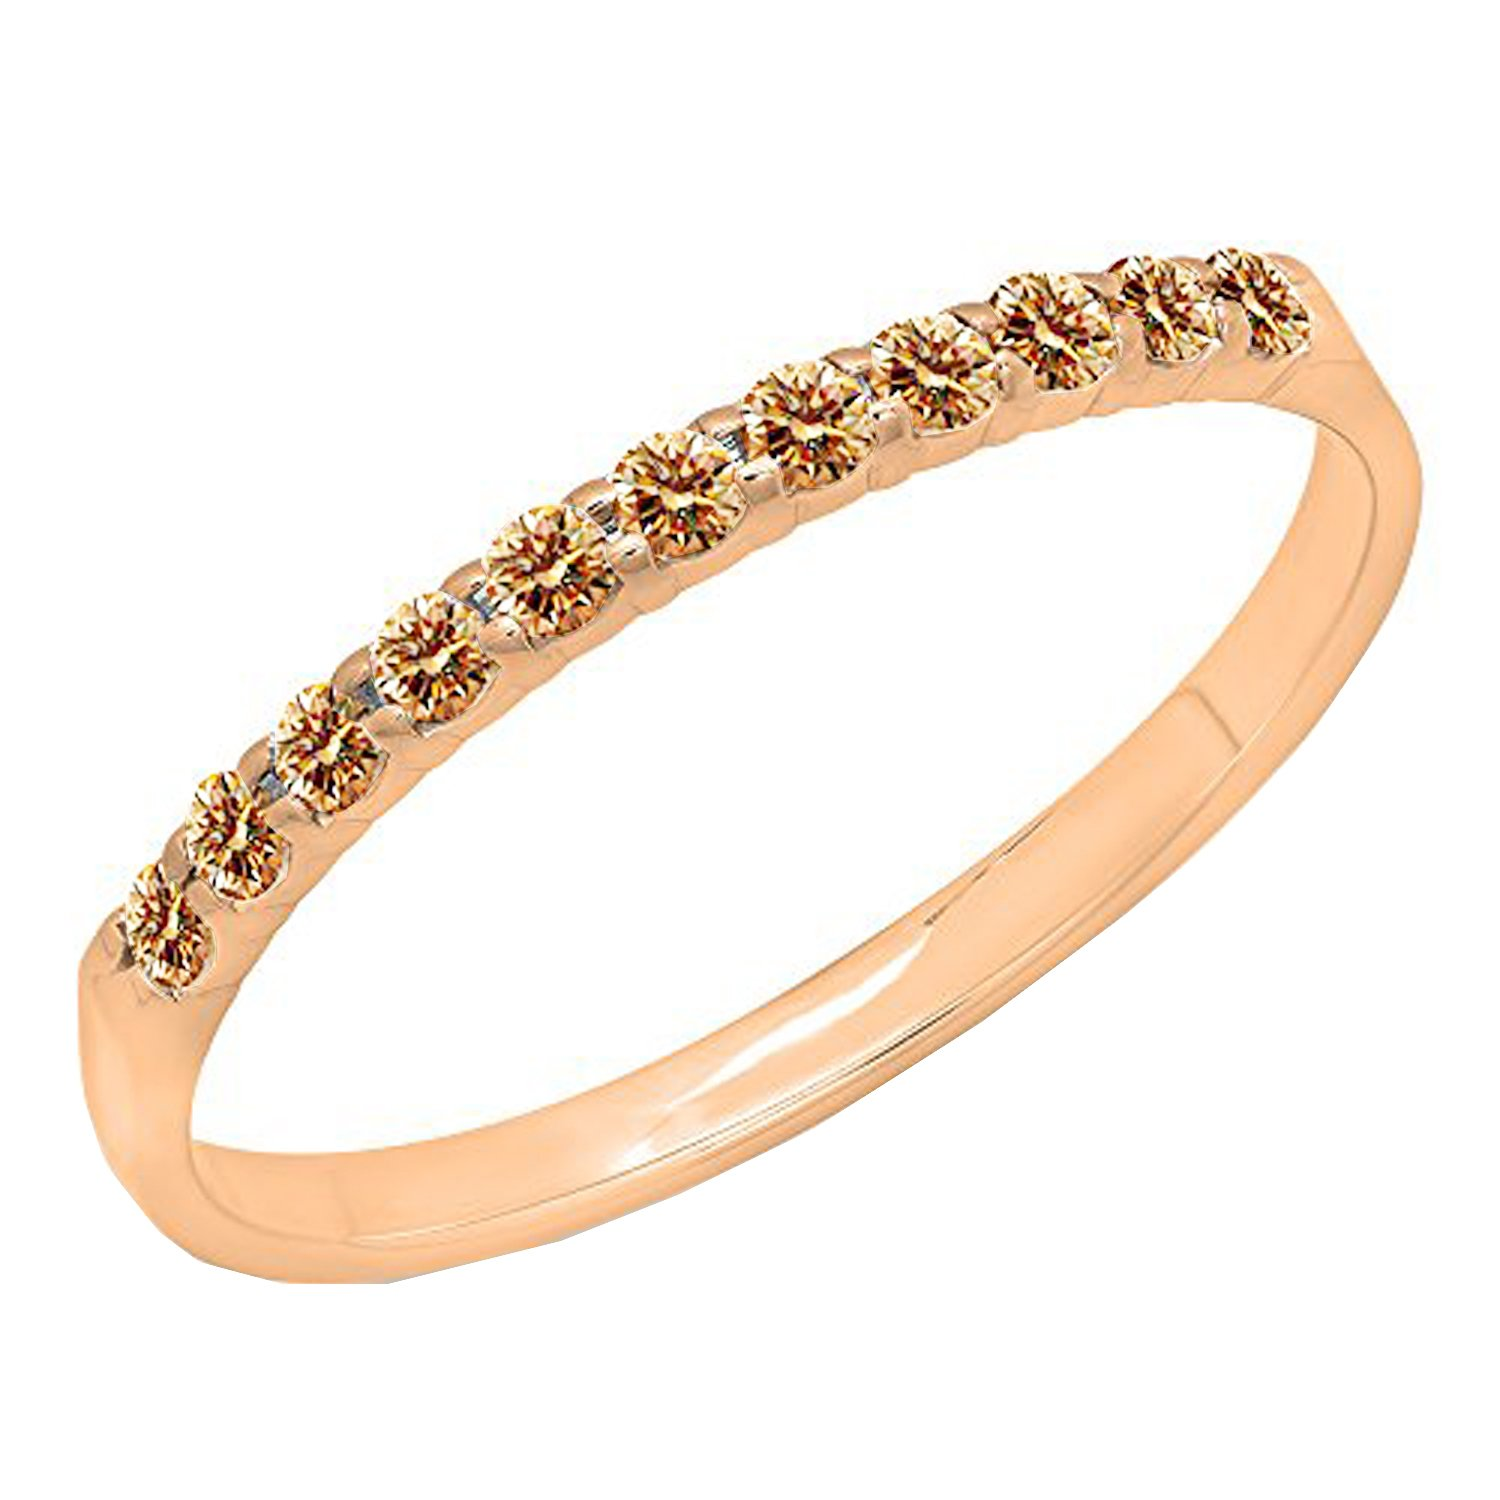 0.20 Carat (ctw) 10k Gold Round Champagne Diamond Ladies Anniversary Wedding Ring Stackable Band 1/5 CT